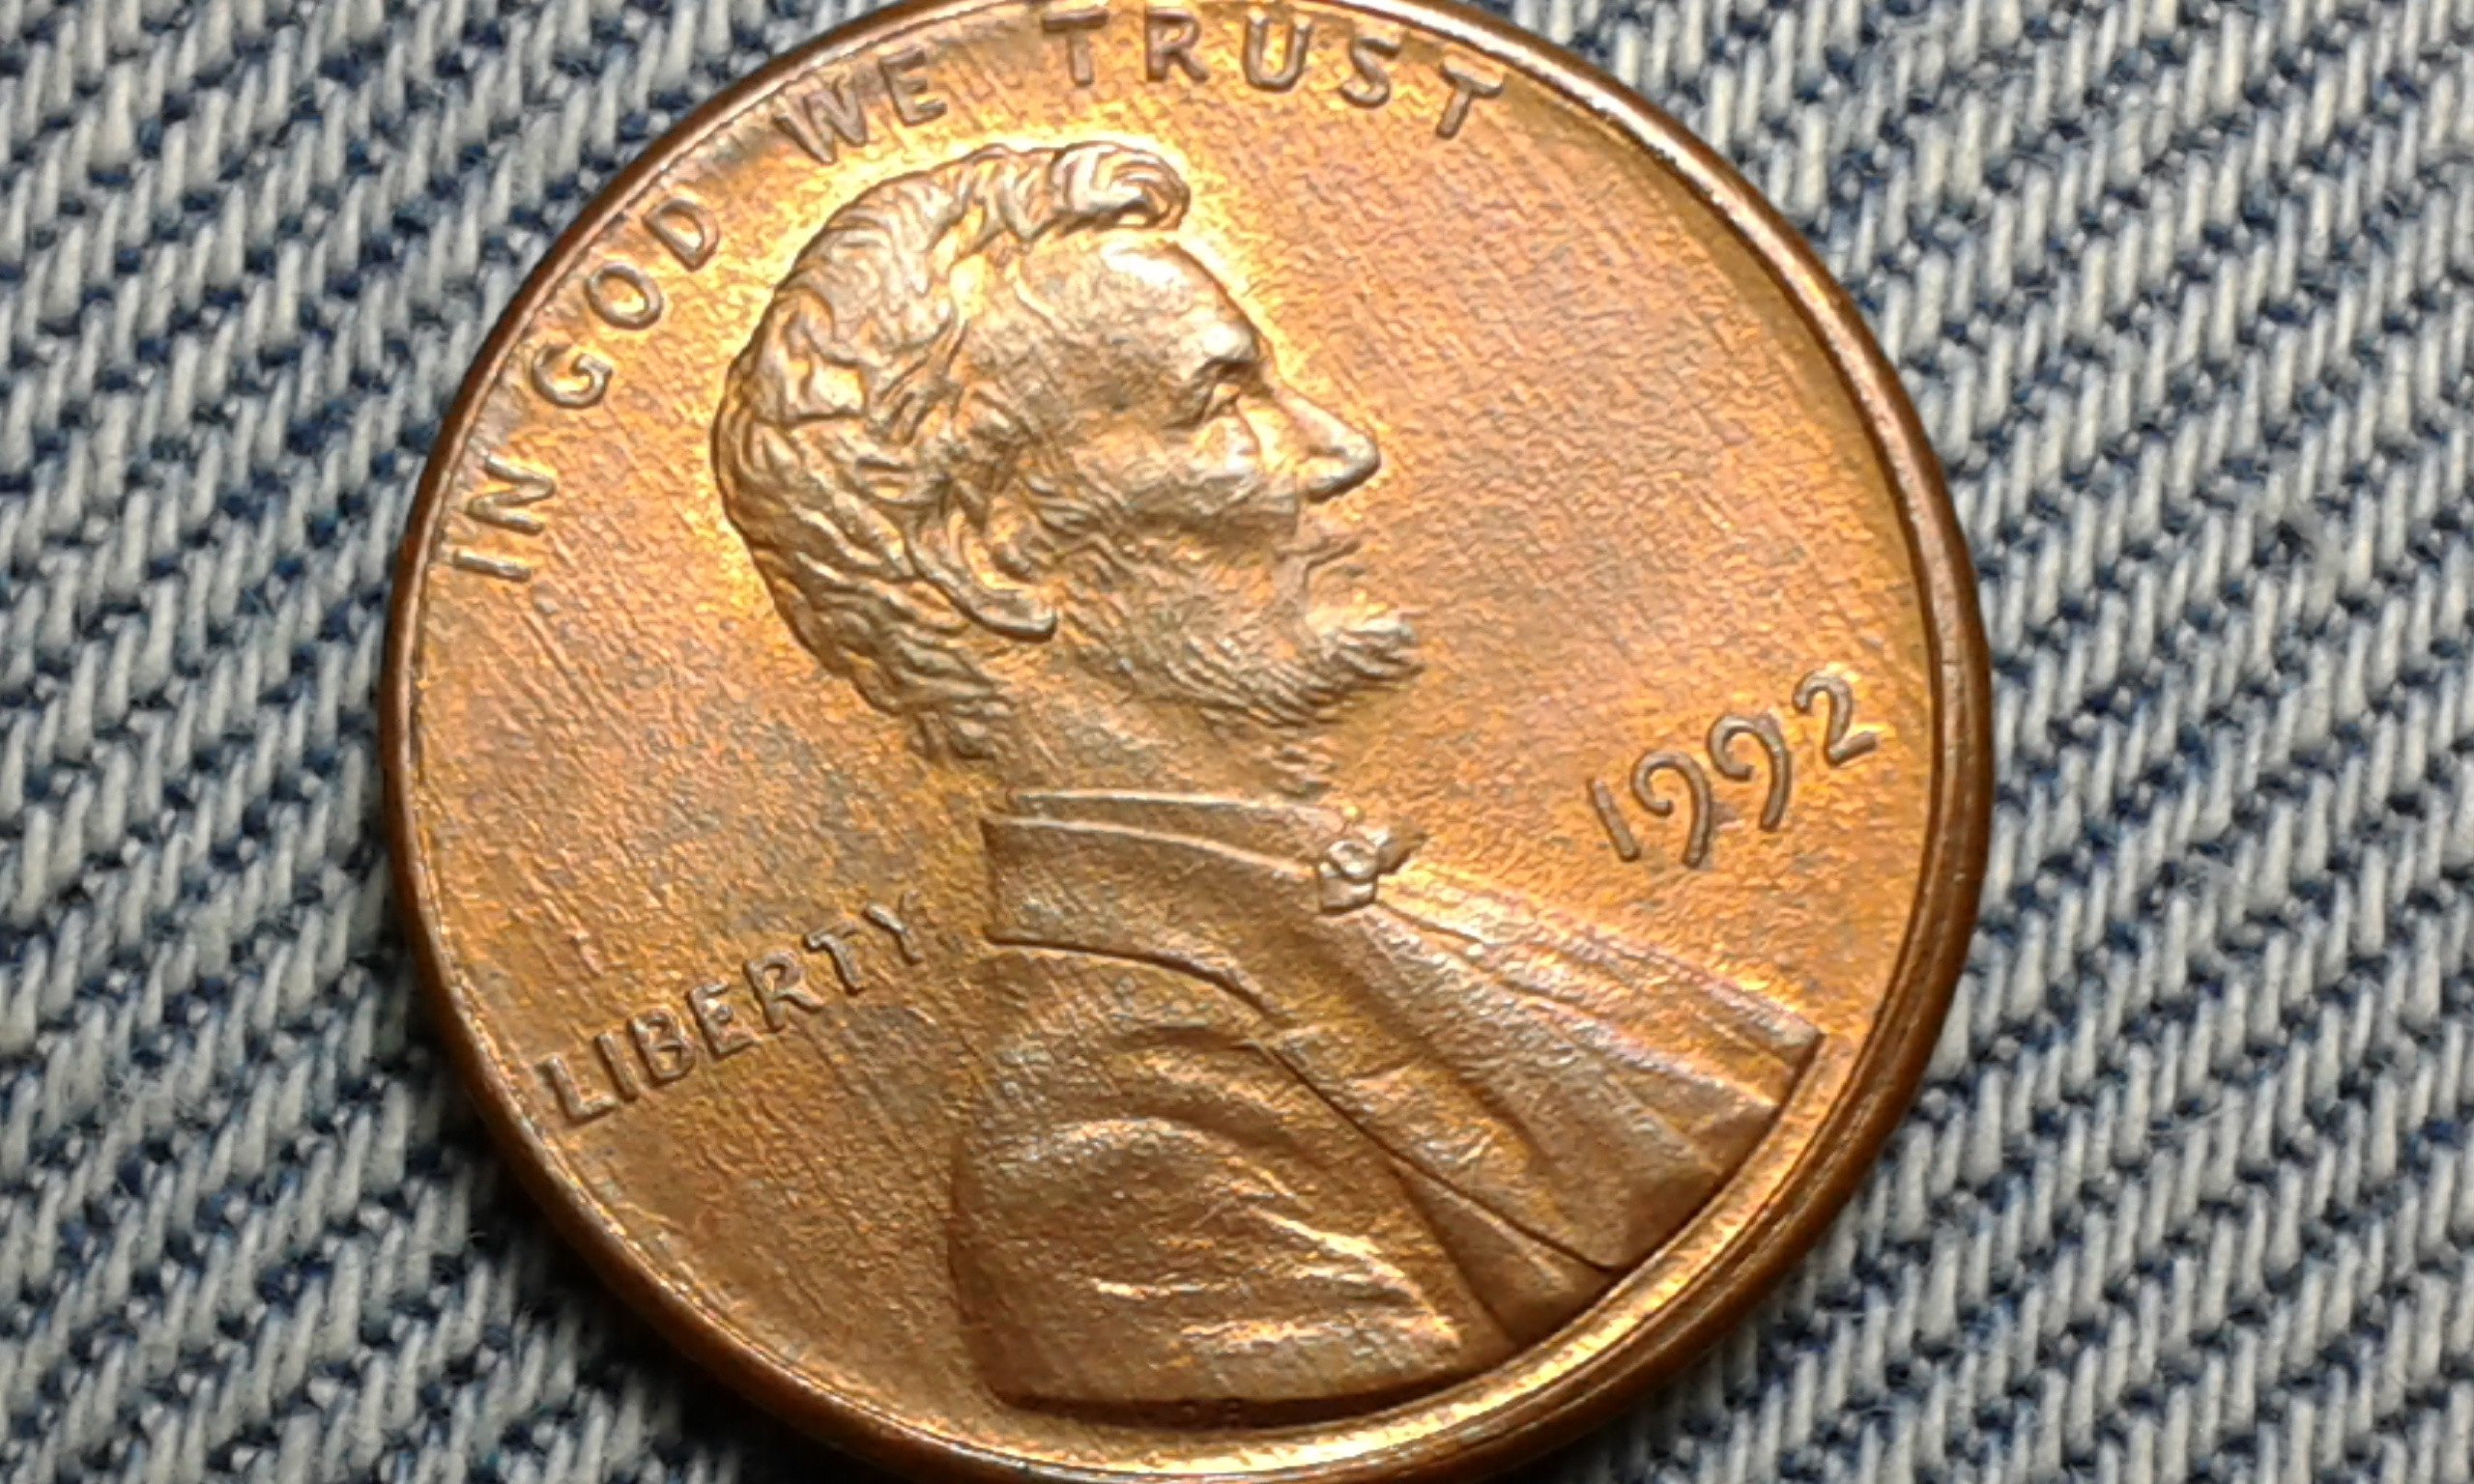 Best Of the Most Valuable Quarters In Circulation A List Valuable Quarters to Look for Of Top 40 Pics Valuable Quarters to Look for